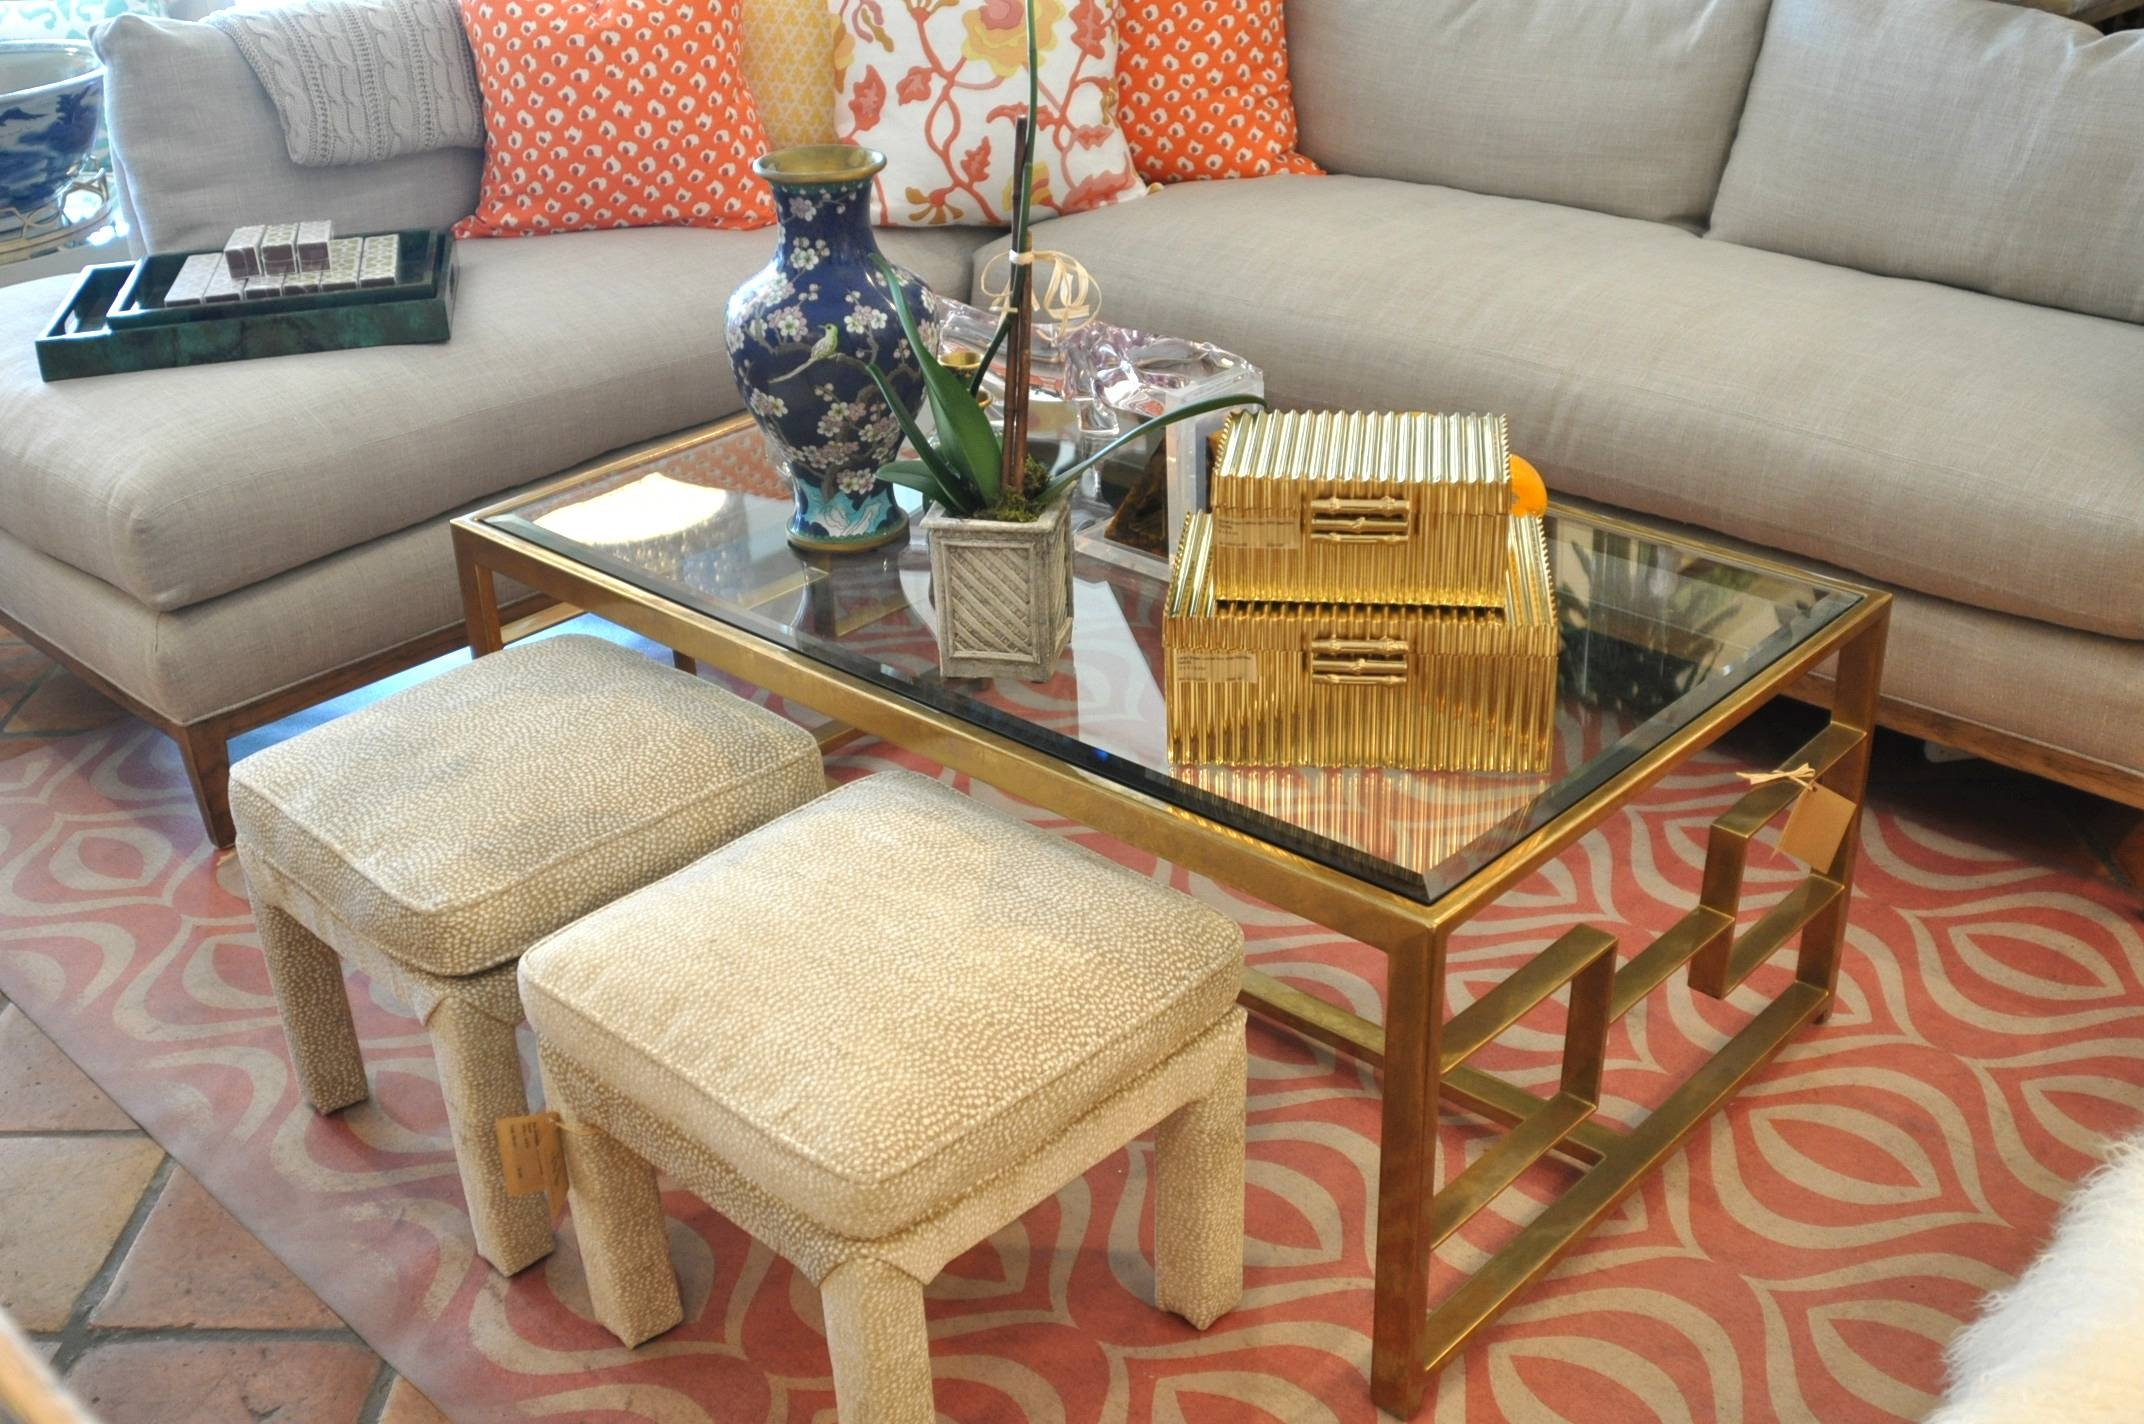 Bronze Geometric Frame Coffee Table - Mecox Gardens throughout Bronze Coffee Table Glass Top (Image 6 of 30)